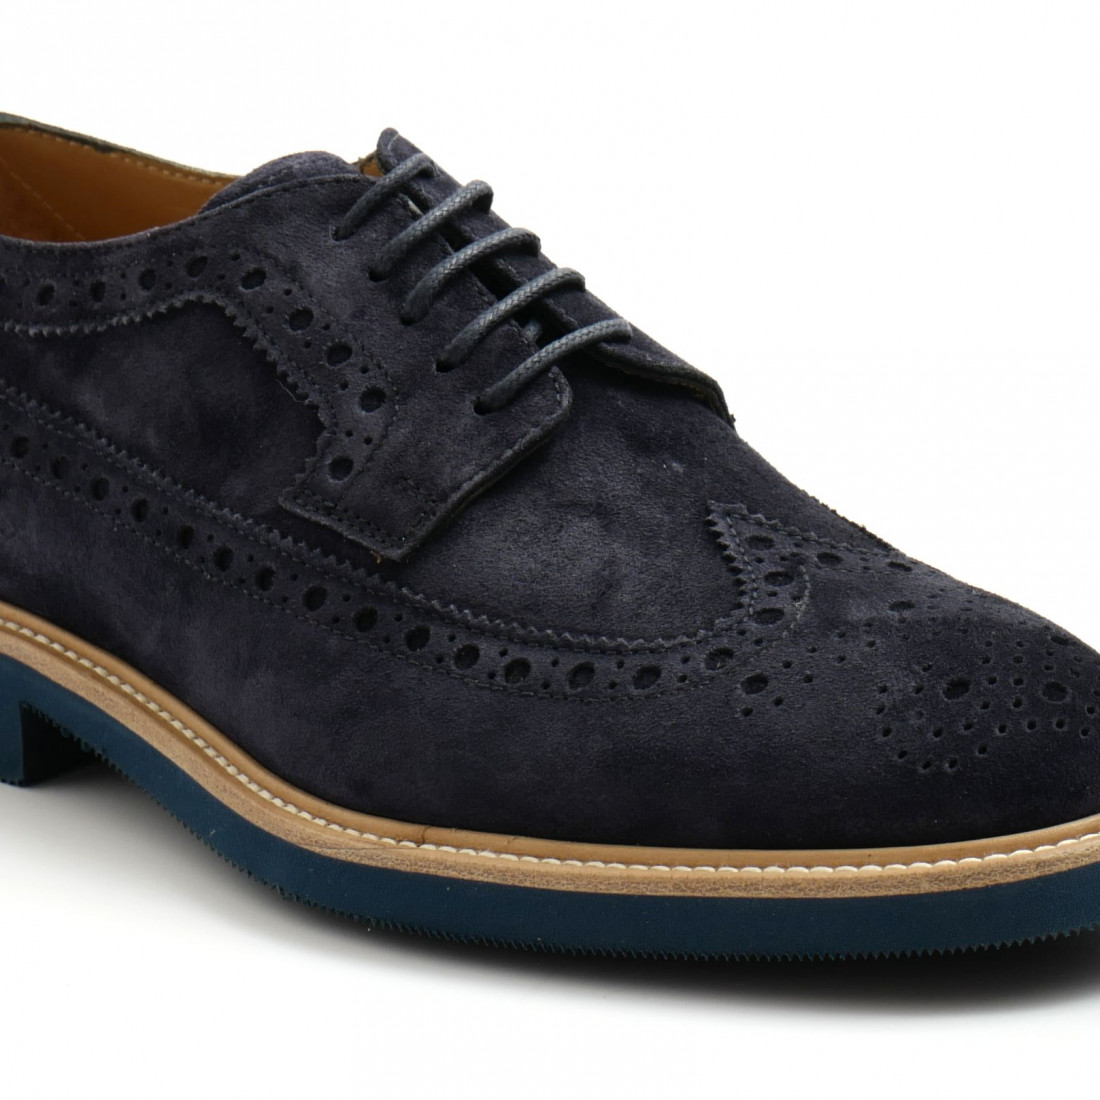 stringate uomo rossano bisconti 466 01softy blu 501 8467